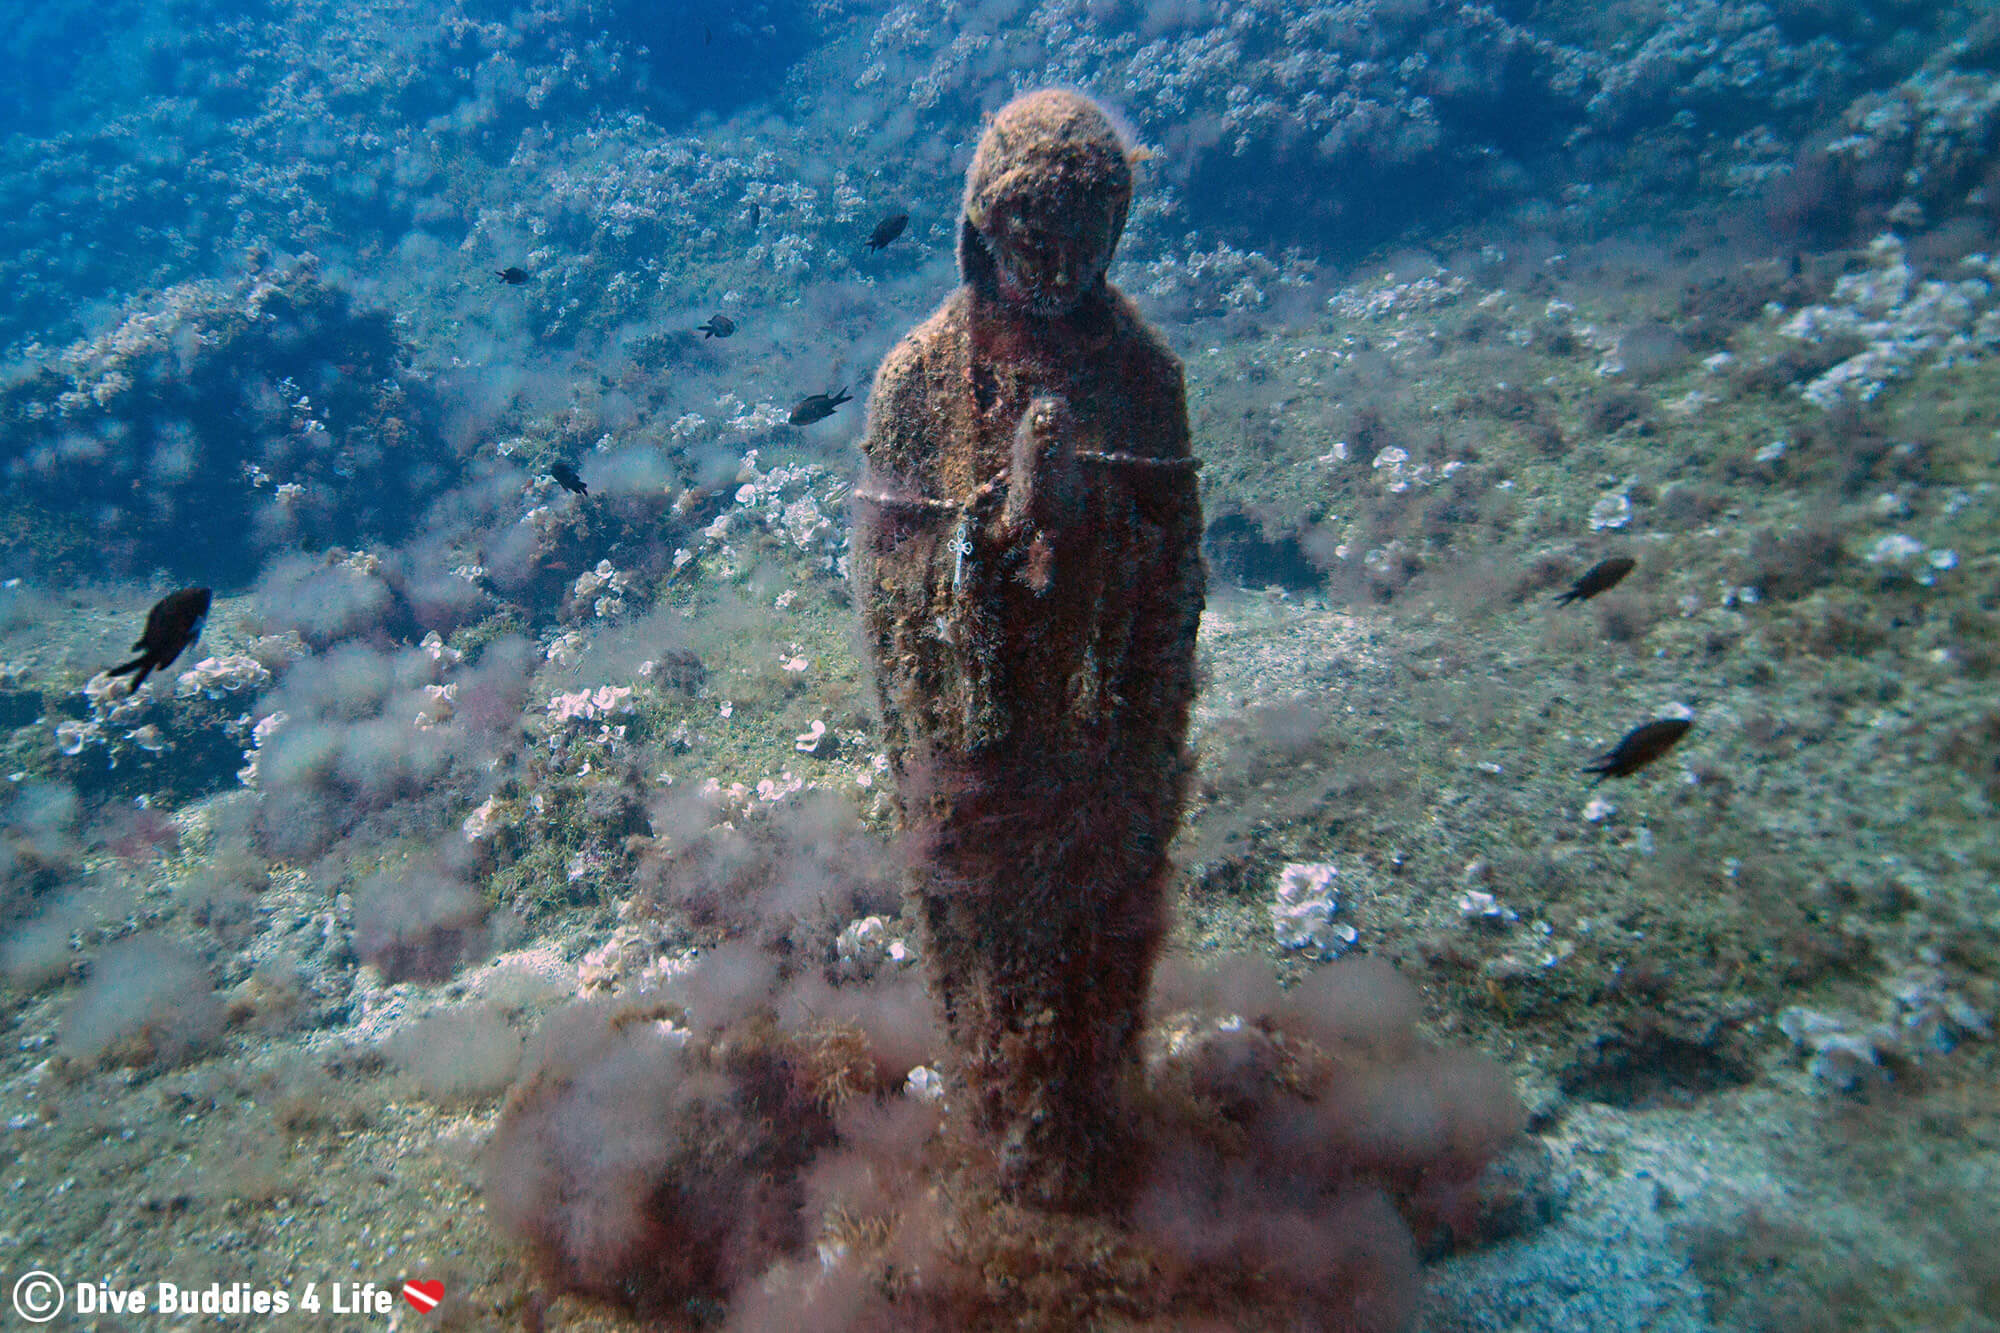 The Underwater Mary Statue In Sorrento, The Amalfi Coast, Italy